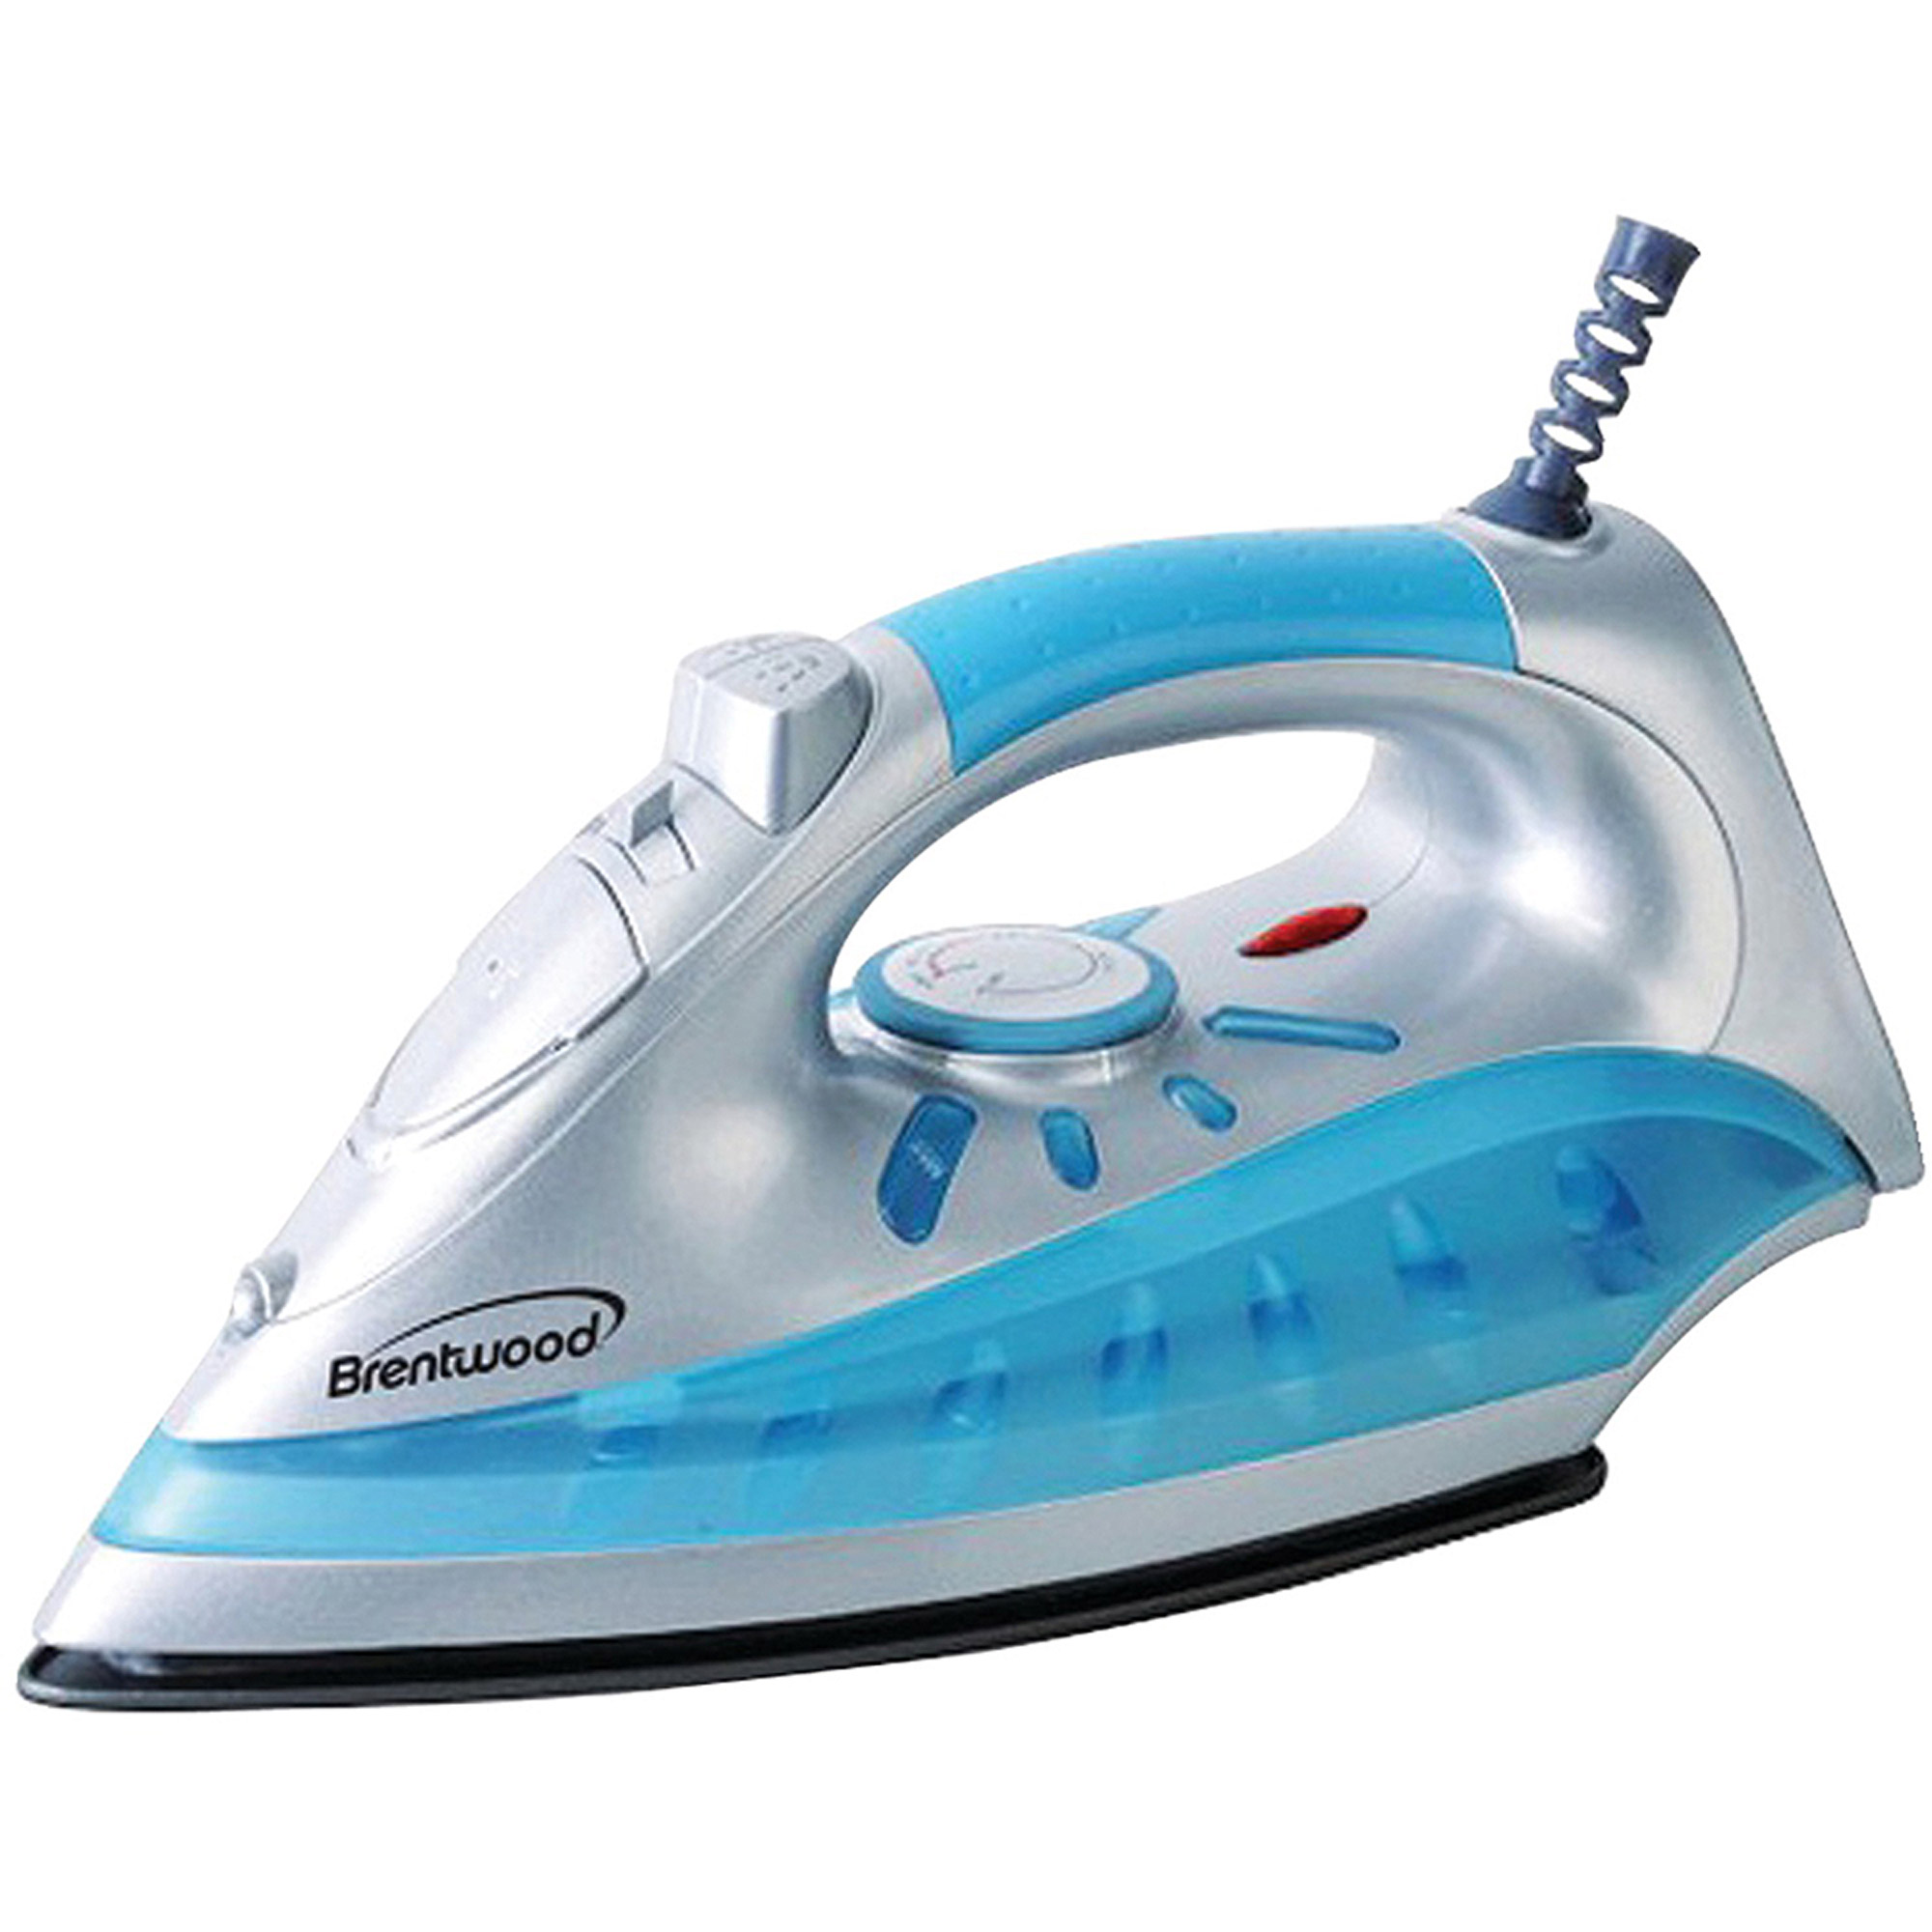 Brentwood MPI-60 Non-Stick Steam/Dry Spray Iron, Silver Finish